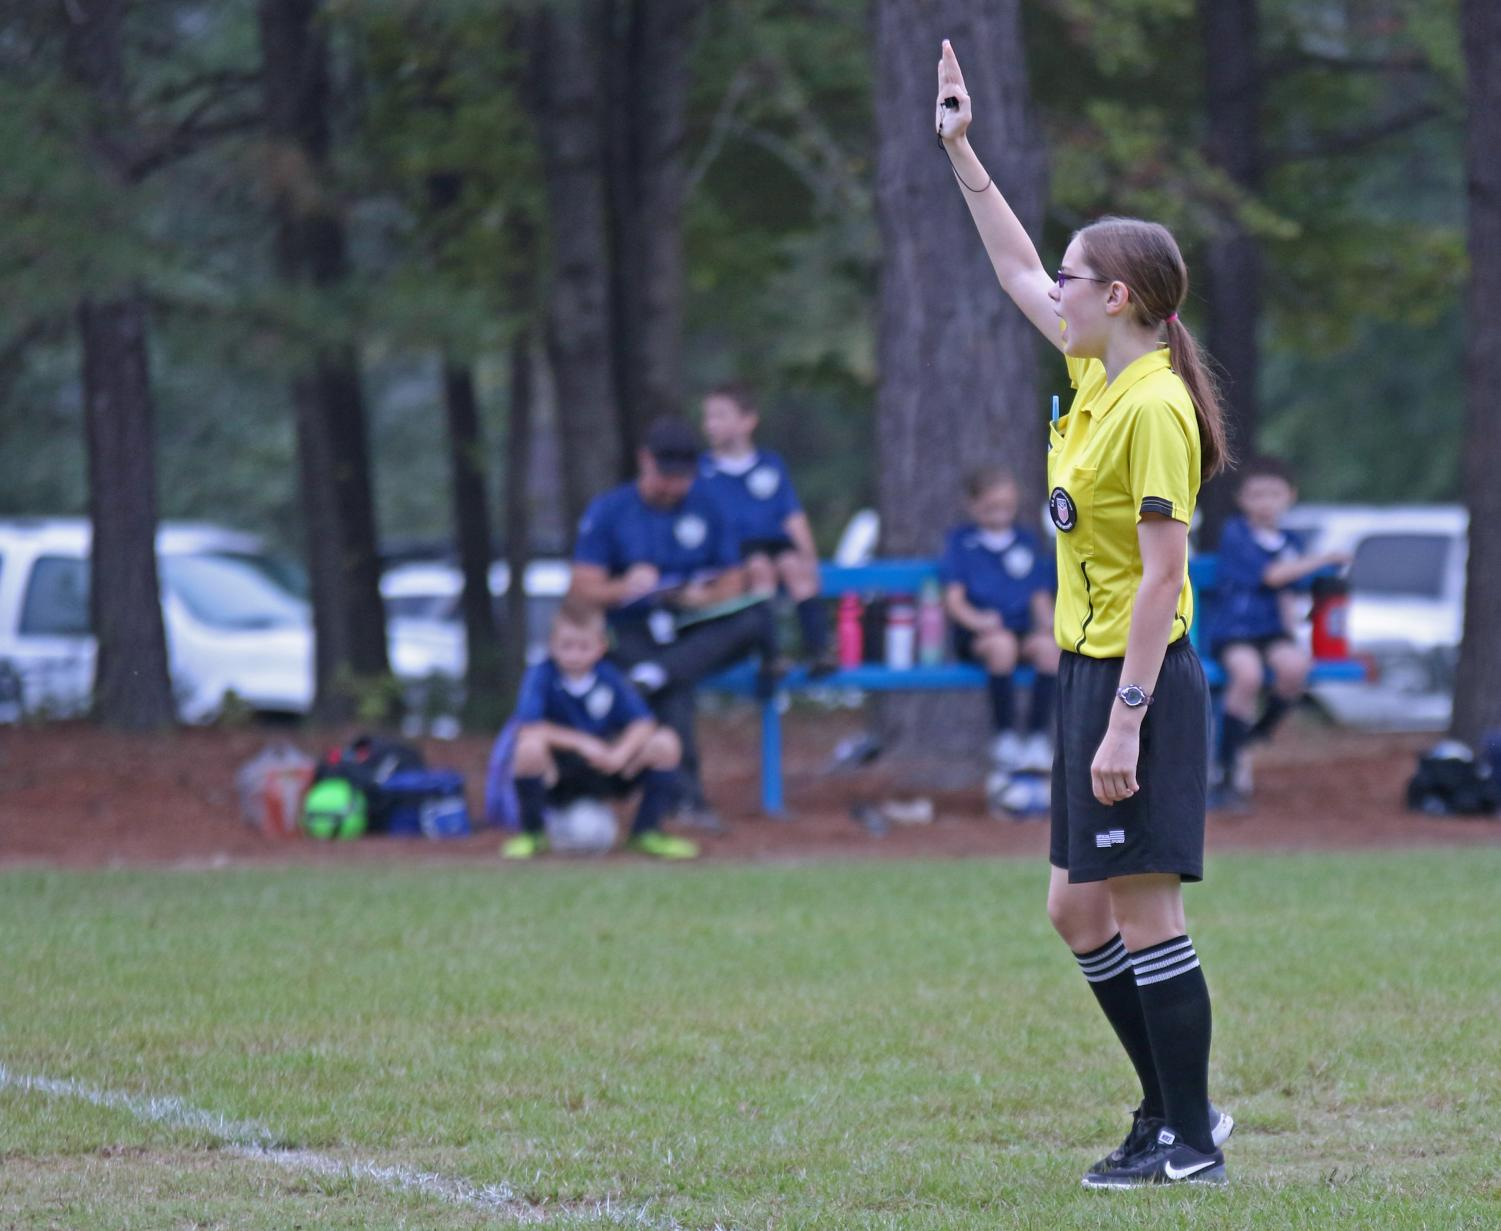 Junior soccer referee Colleen Starkey makes a foul call in a youth recreational soccer game. She has been a referee for five seasons, all with the Lindale Soccer Association.